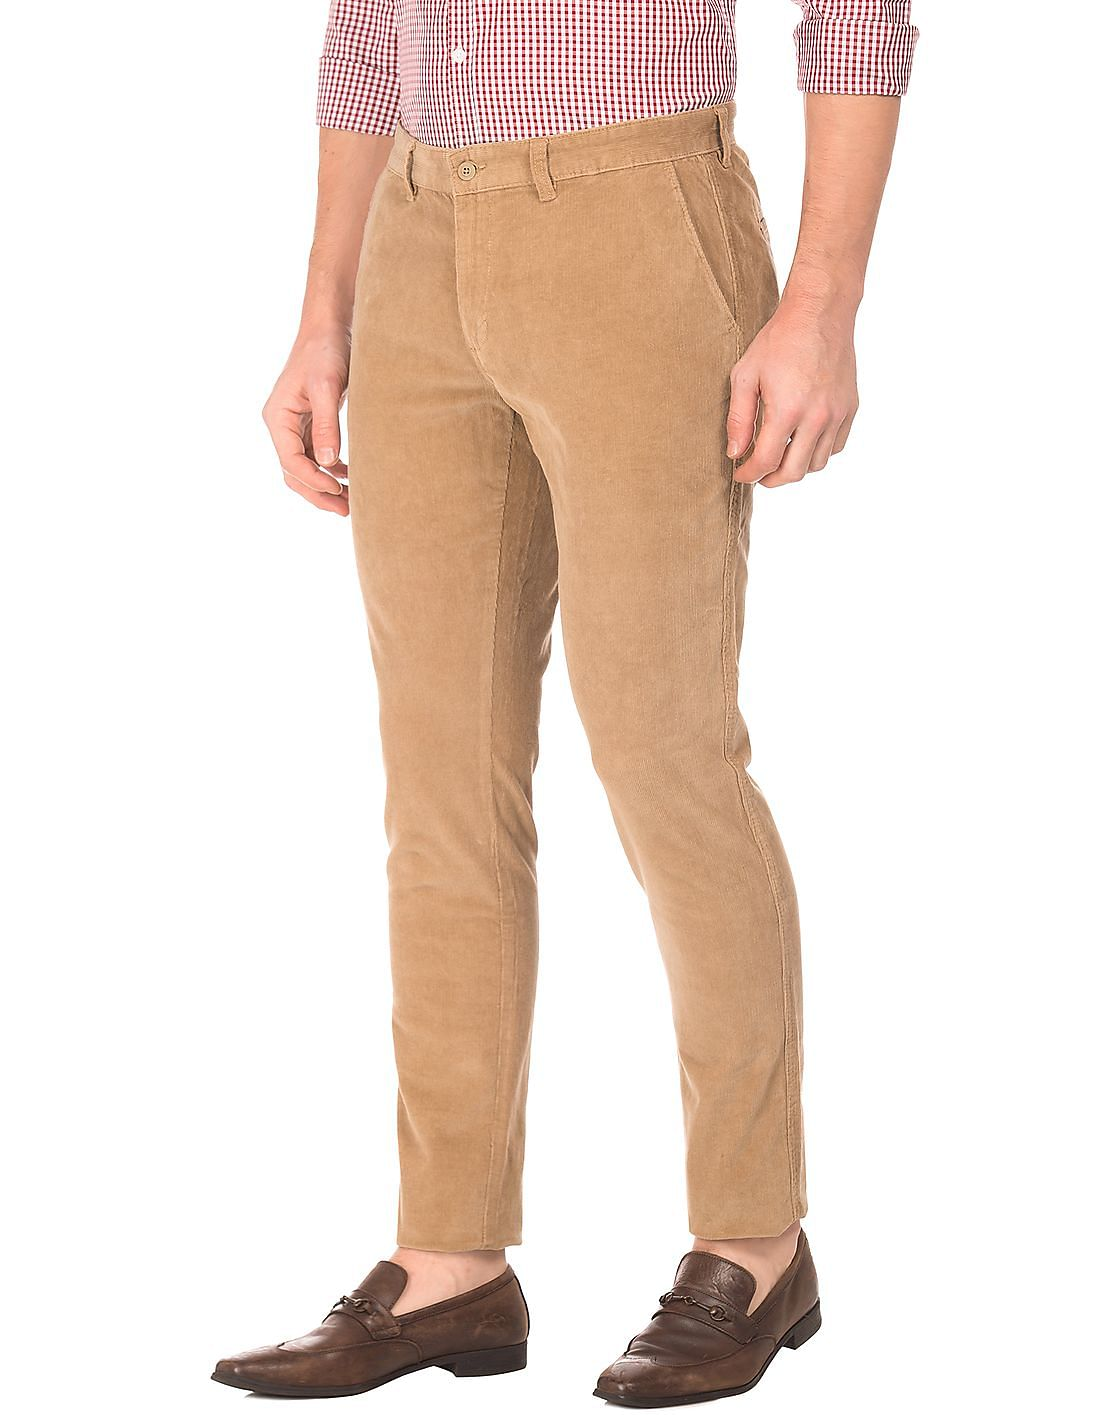 4f160568bd78f7 Buy Men Modern Fit Corduroy Trousers online at NNNOW.com